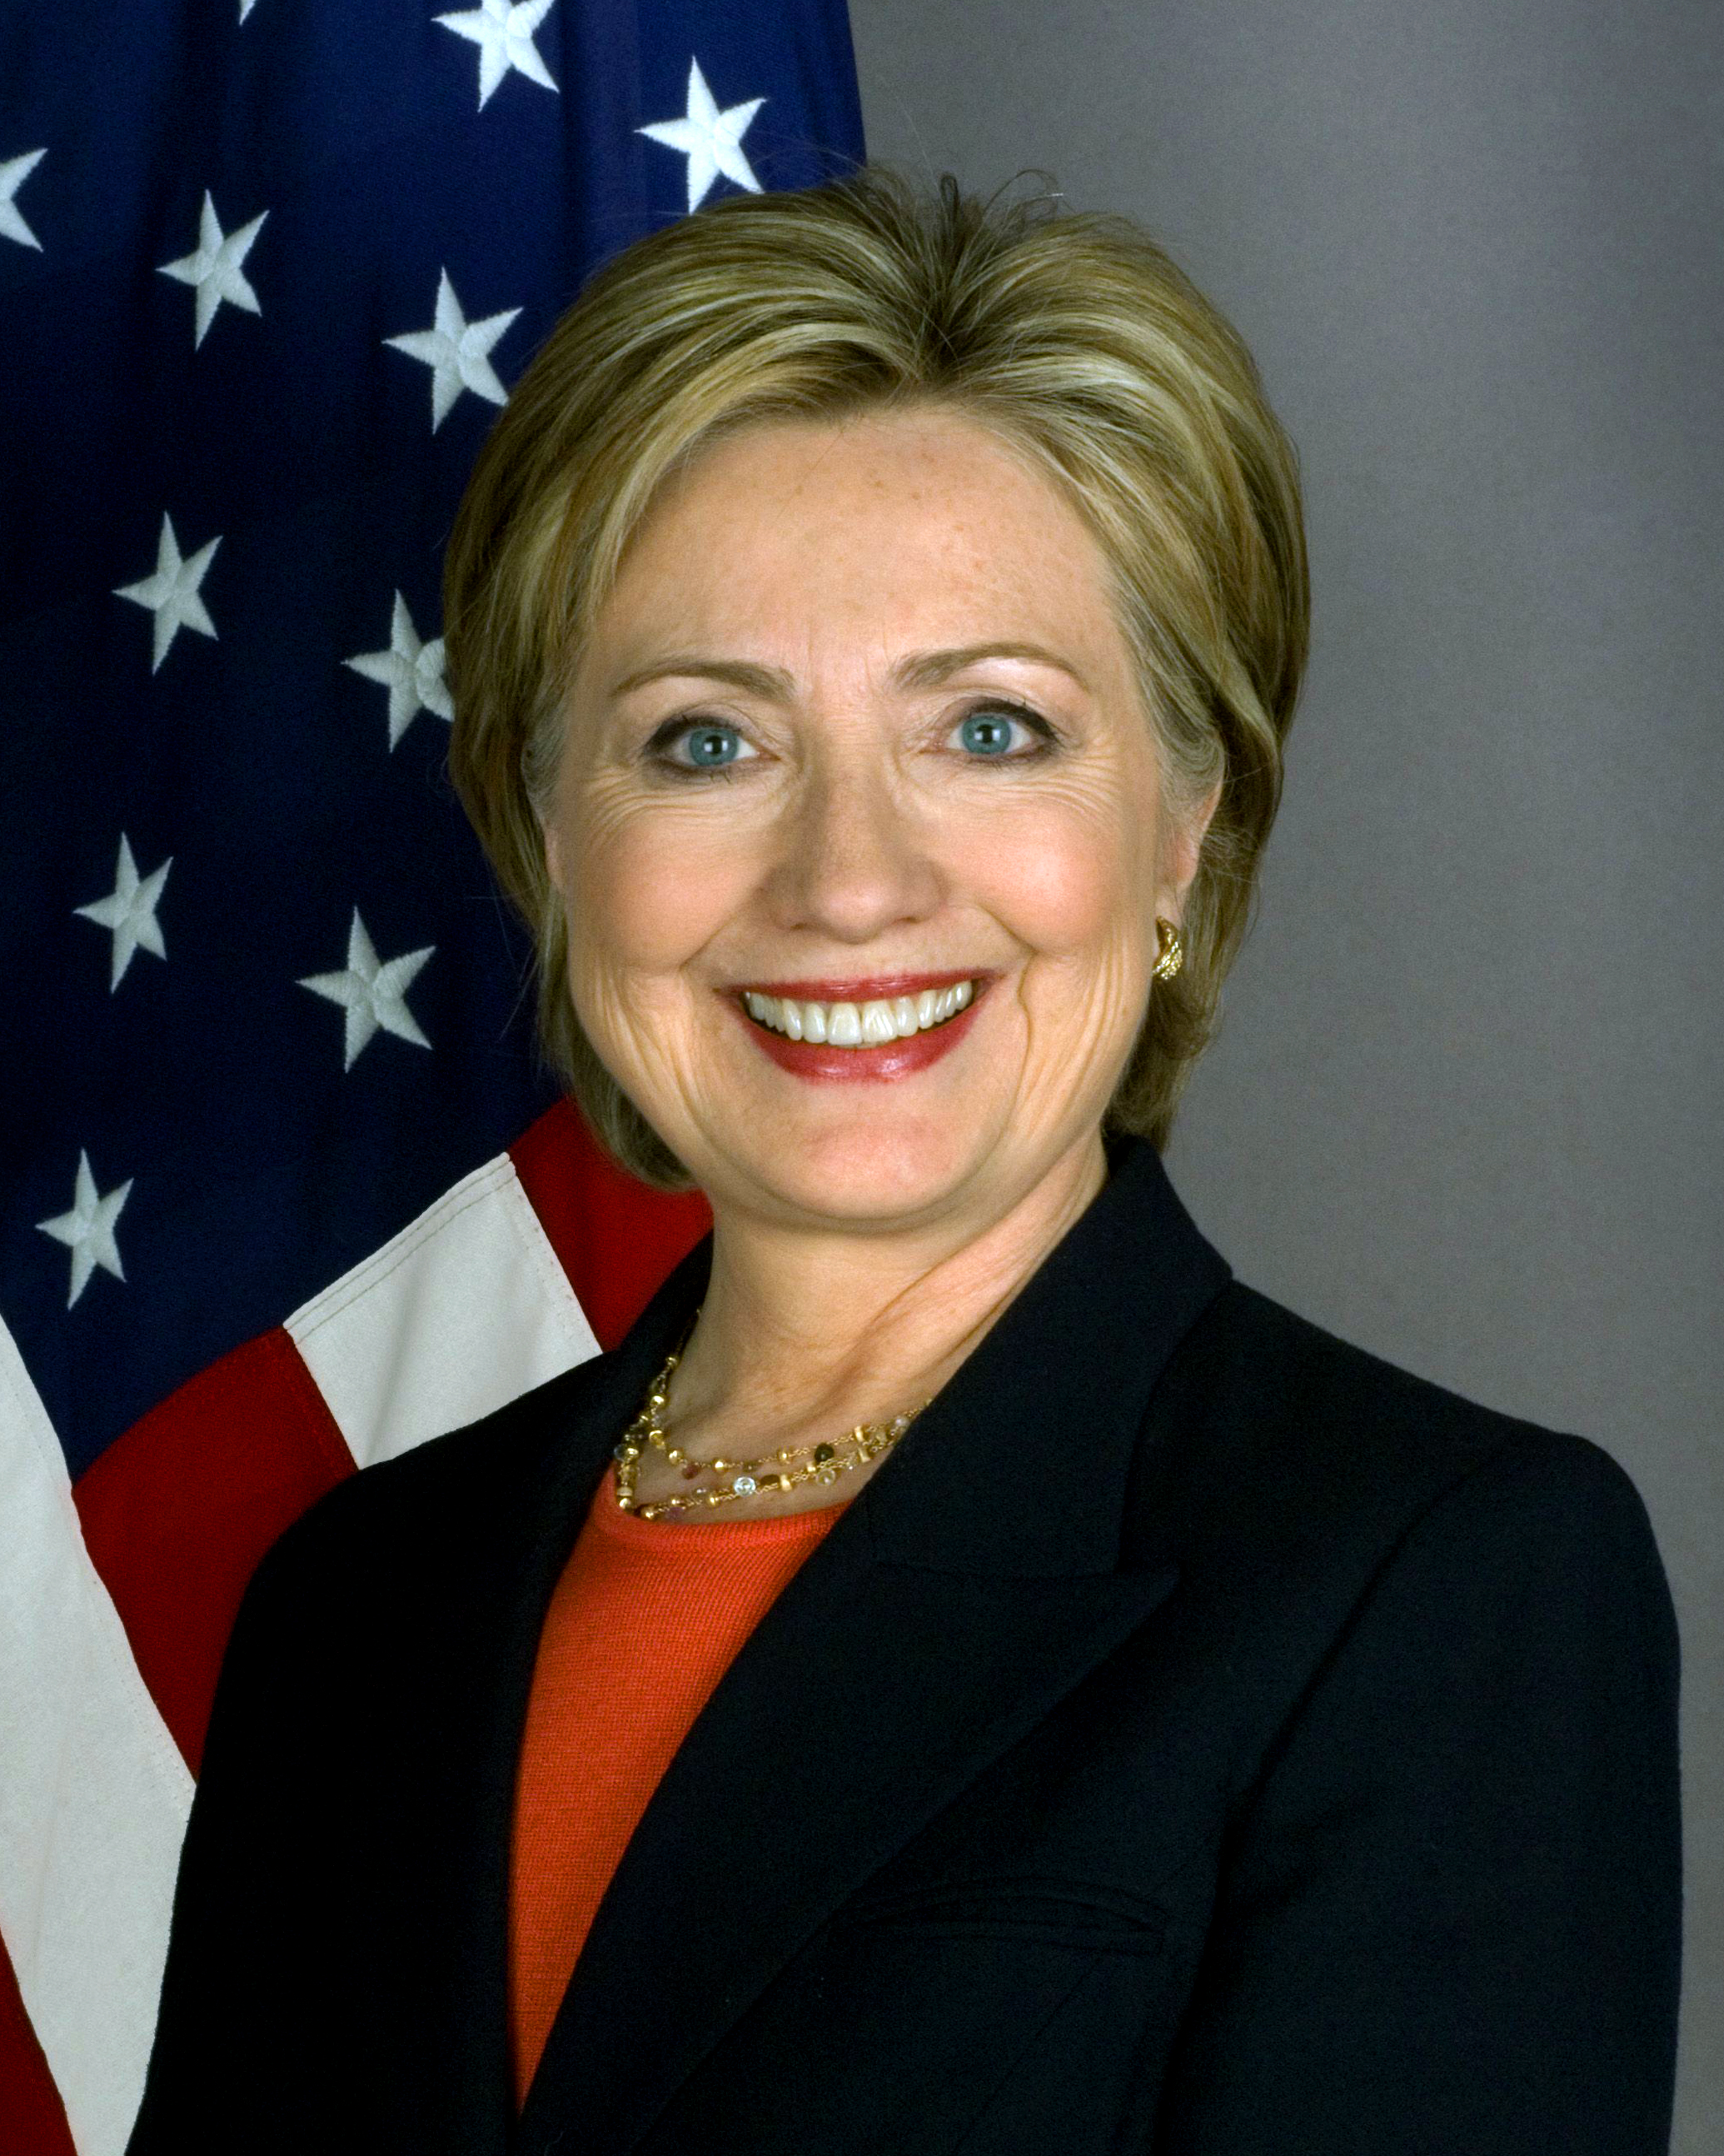 http://upload.wikimedia.org/wikipedia/commons/2/27/Hillary_Clinton_official_Secretary_of_State_portrait_crop.jpg